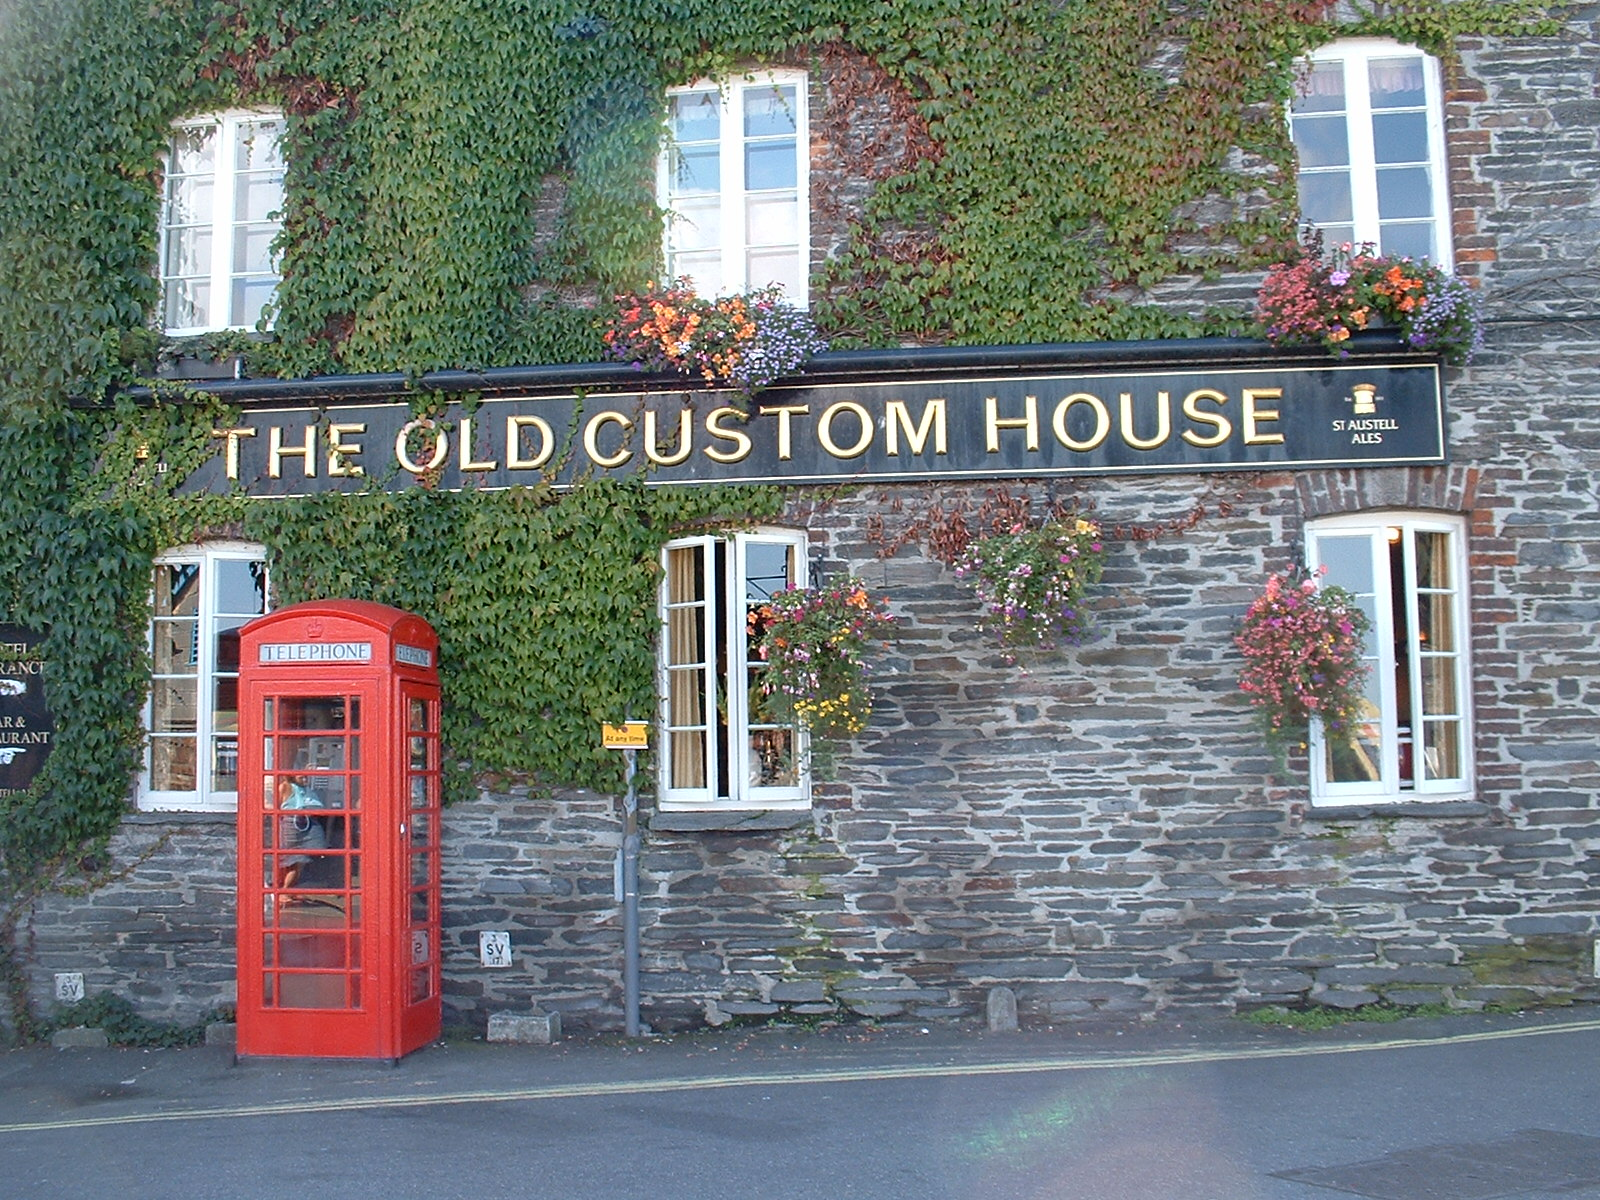 htoml the old custom house wall facade building windows ivy red phonebooth